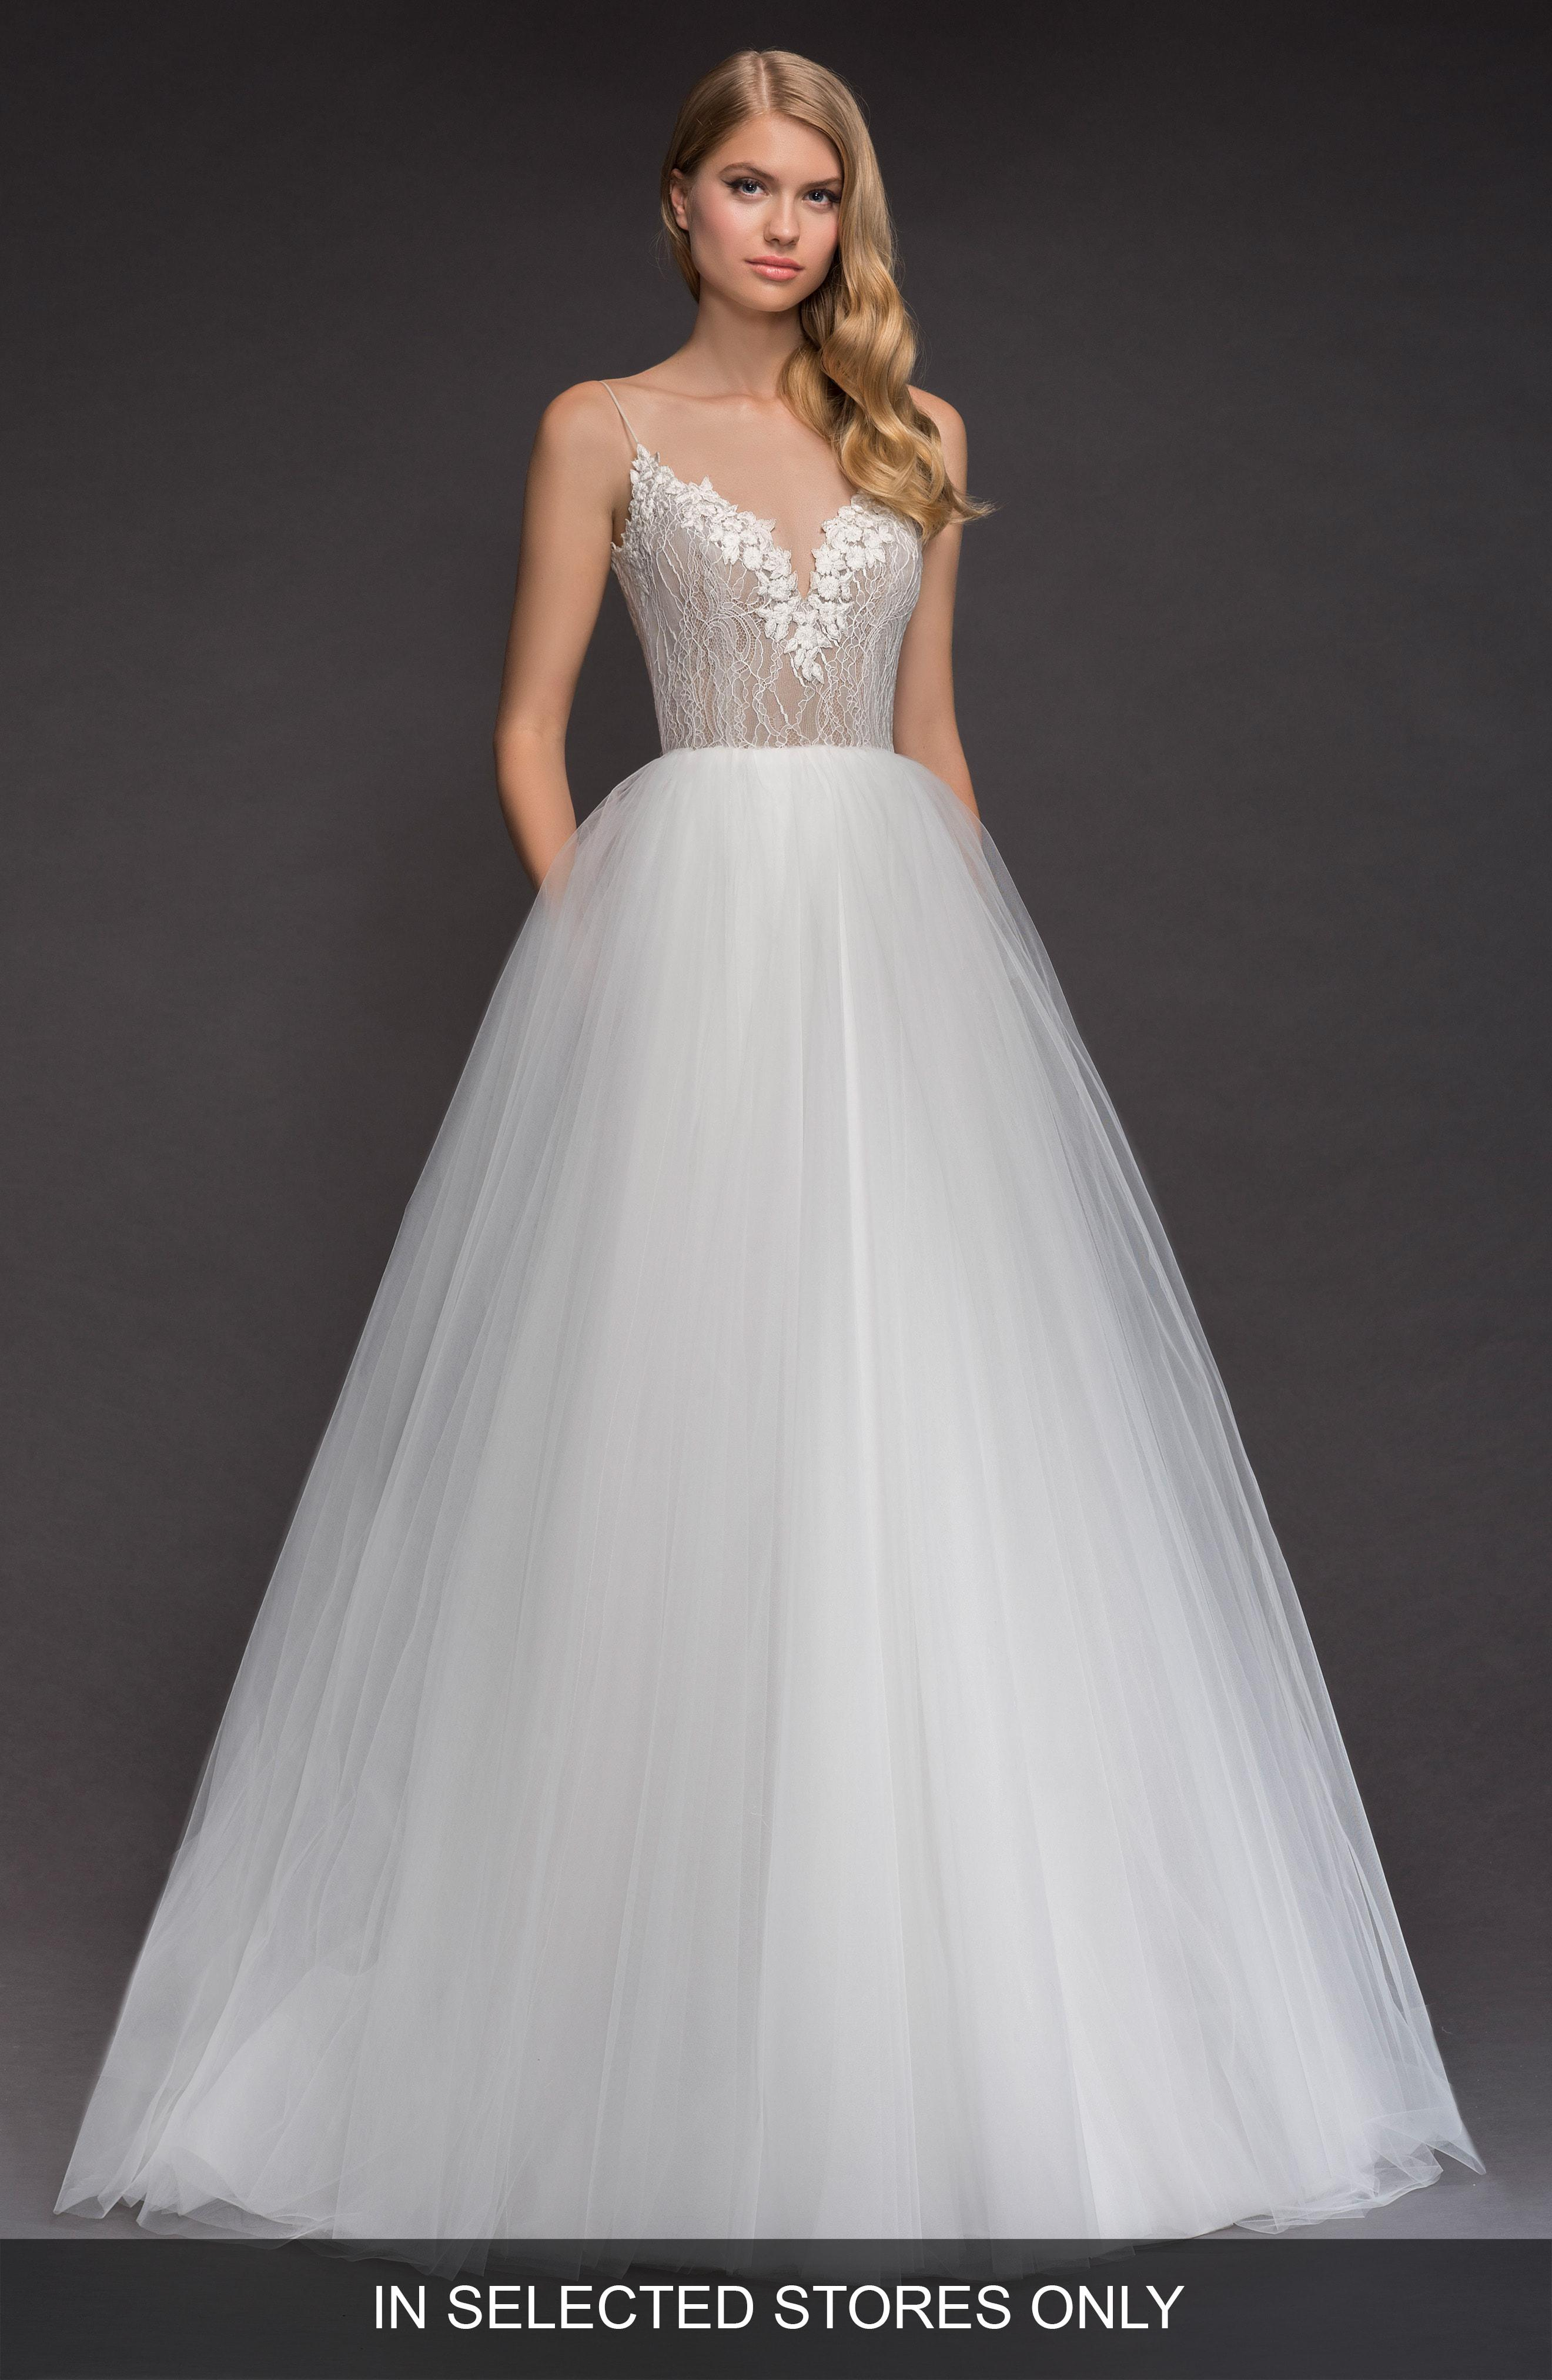 ba951e35d Lyst - BLUSH BY HAYLEY PAIGE Brier Lace & Tulle Ballgown in Gray